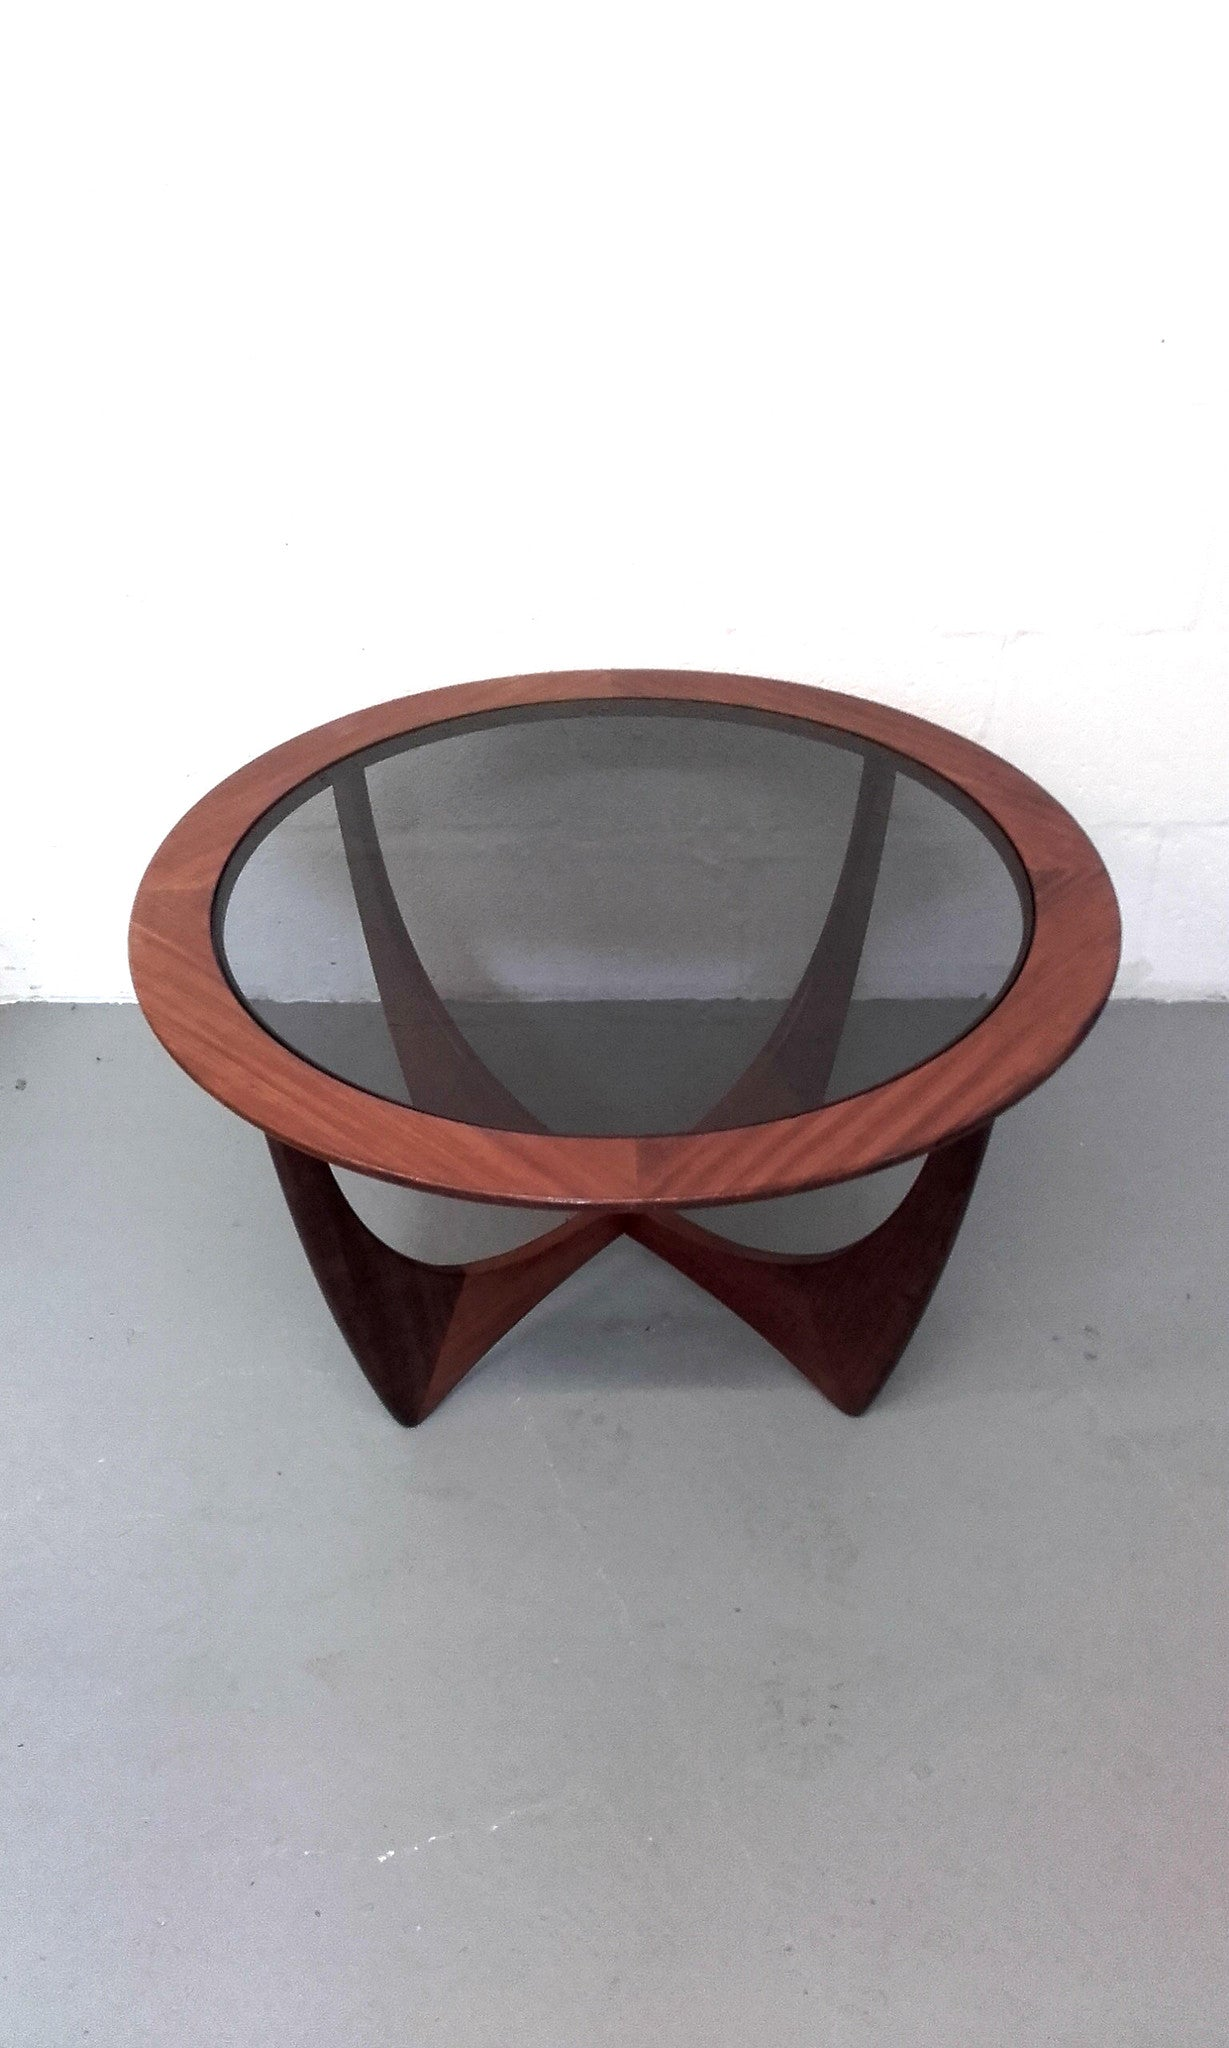 Iconic g plan astro teak and smoked glass coffee table whittaker iconic g plan astro teak and smoked glass coffee table geotapseo Images